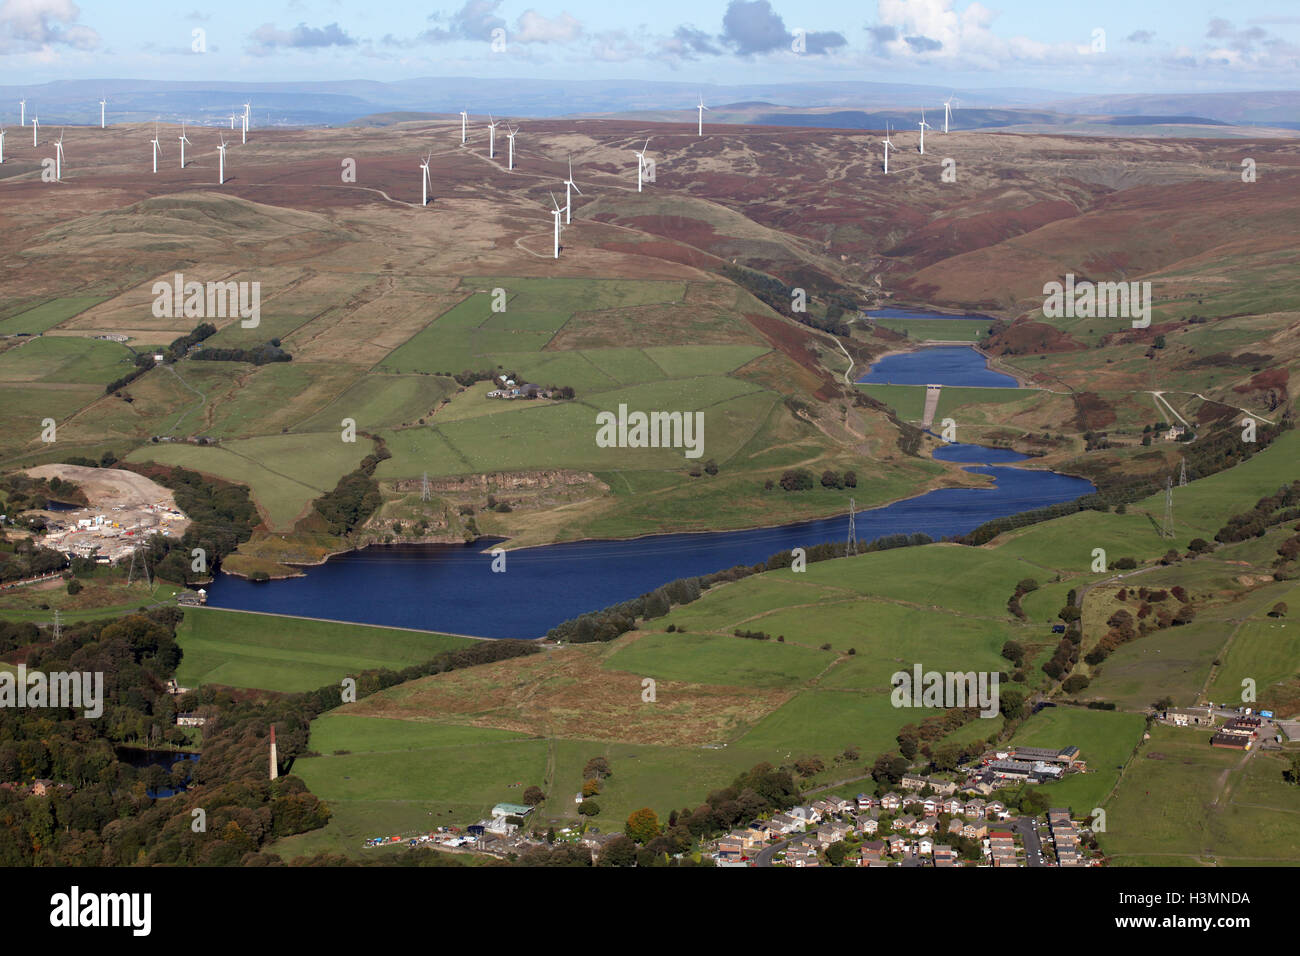 aerial view of Greenbooth Reservoir & Lower and Higher Naden Reservoirs near Rochdale, Lancashire, UK - Stock Image